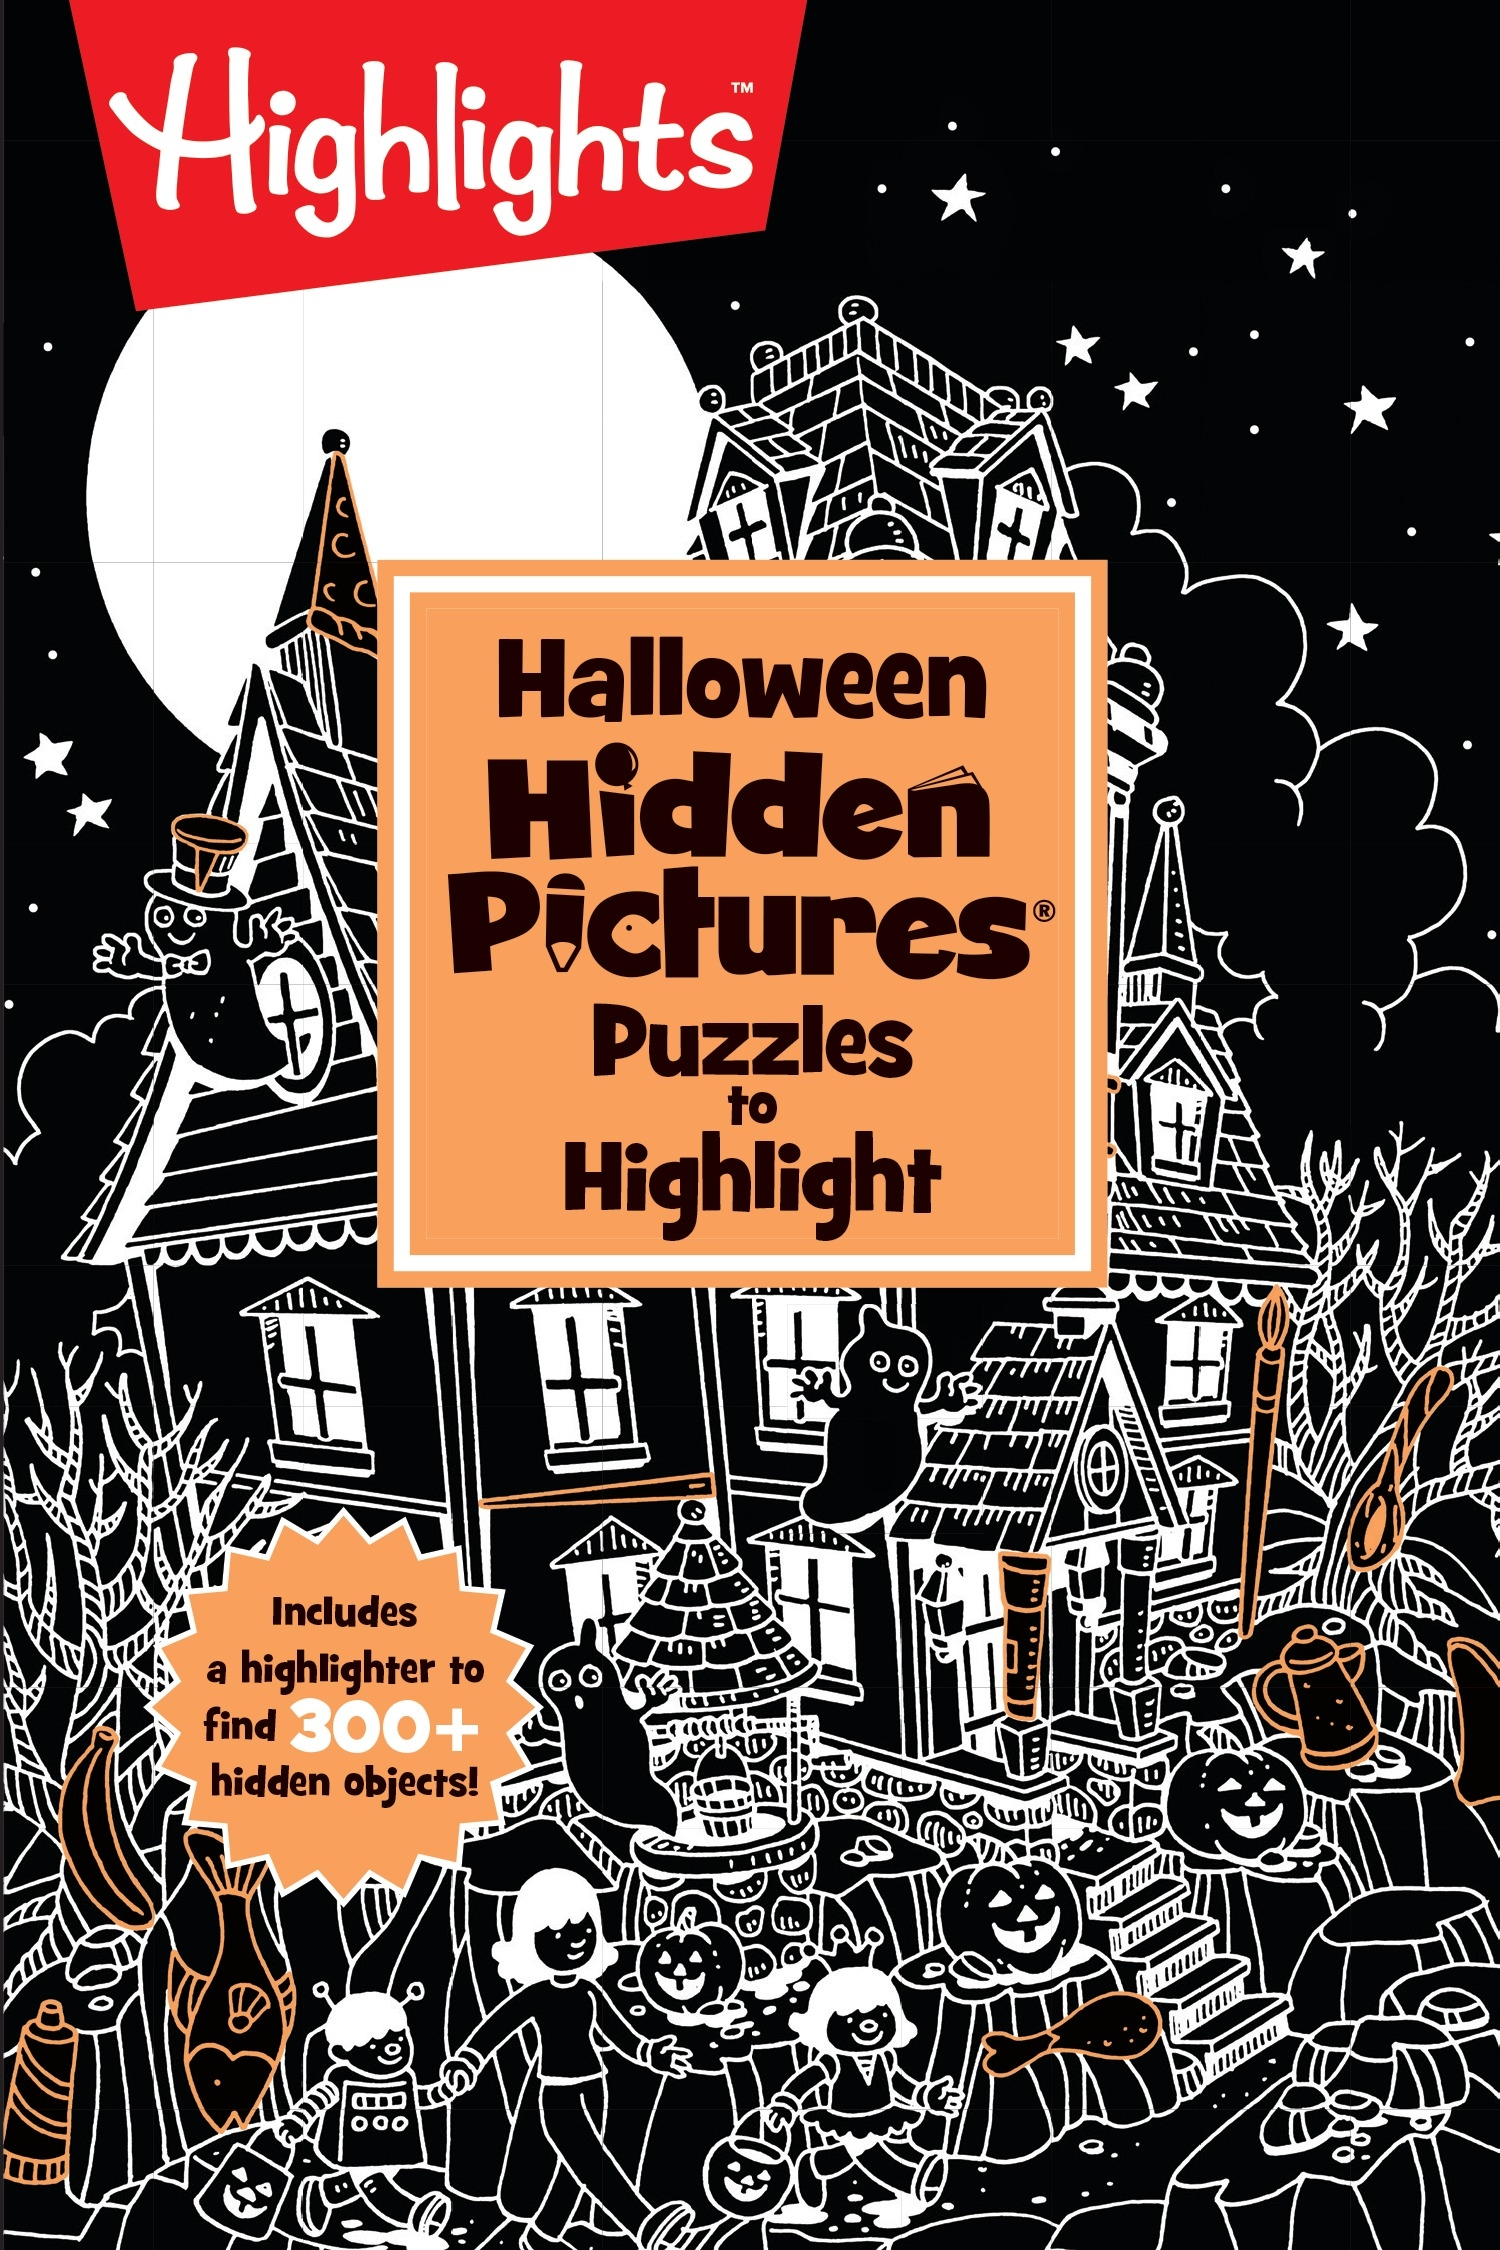 Halloween Hidden Pictures Puzzles To Highlight By Highlights